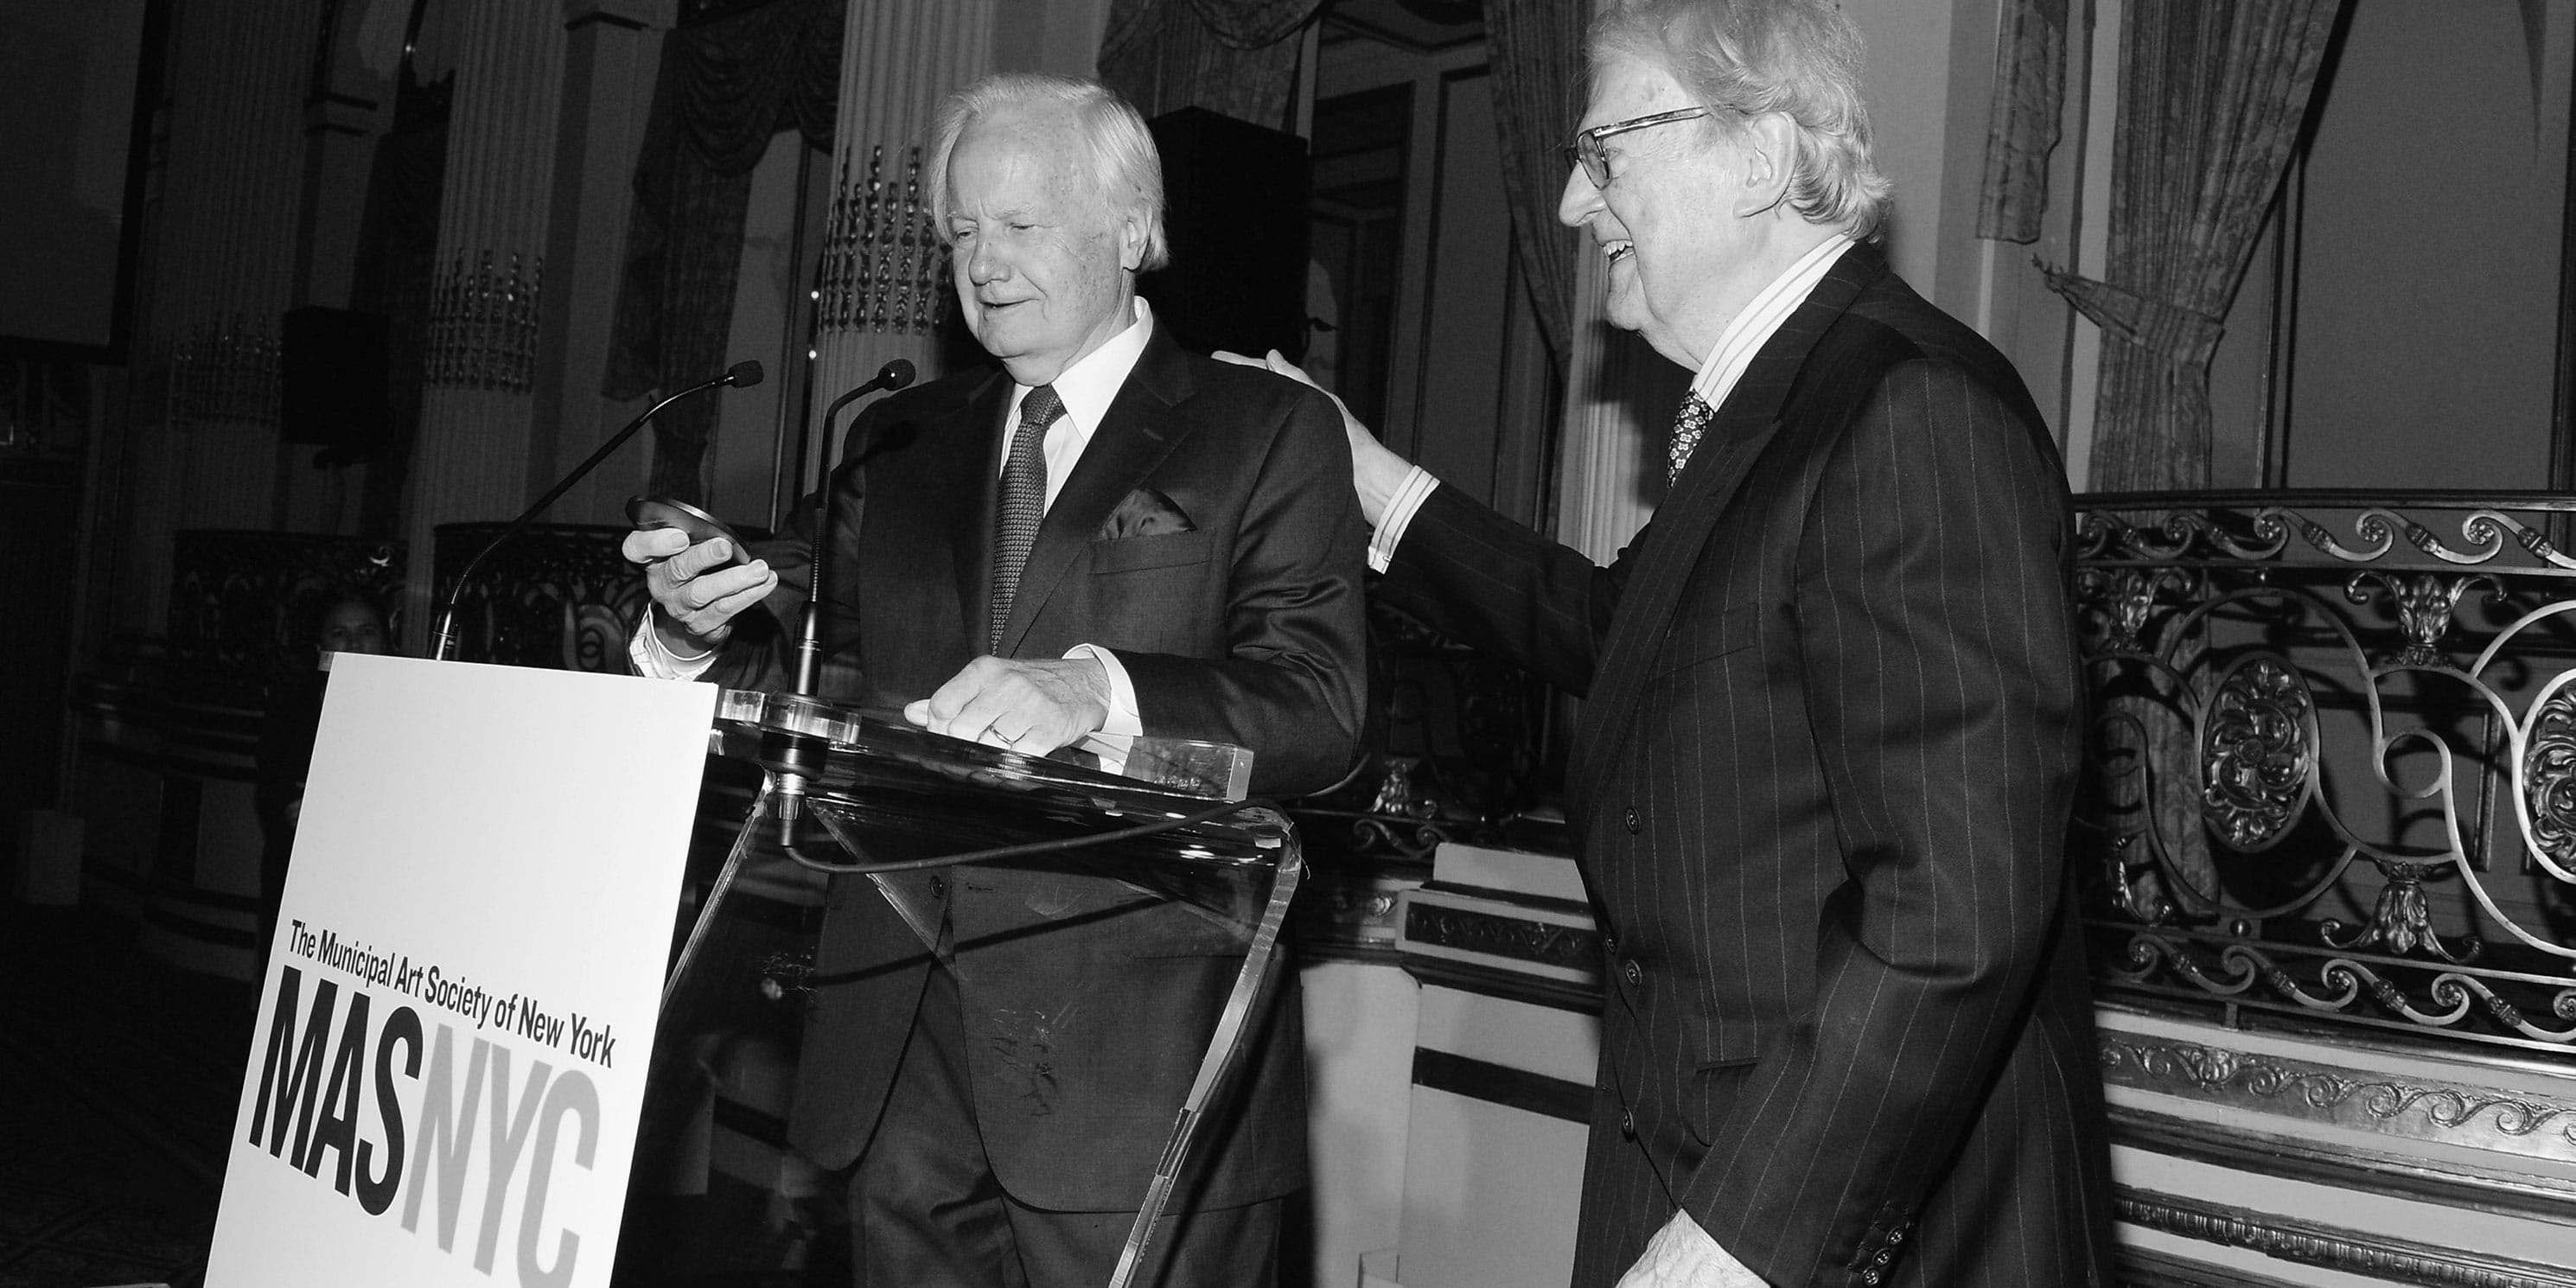 Ambassador vanden Heuvel receives medal from Bill Moyers at the 2016 Gala